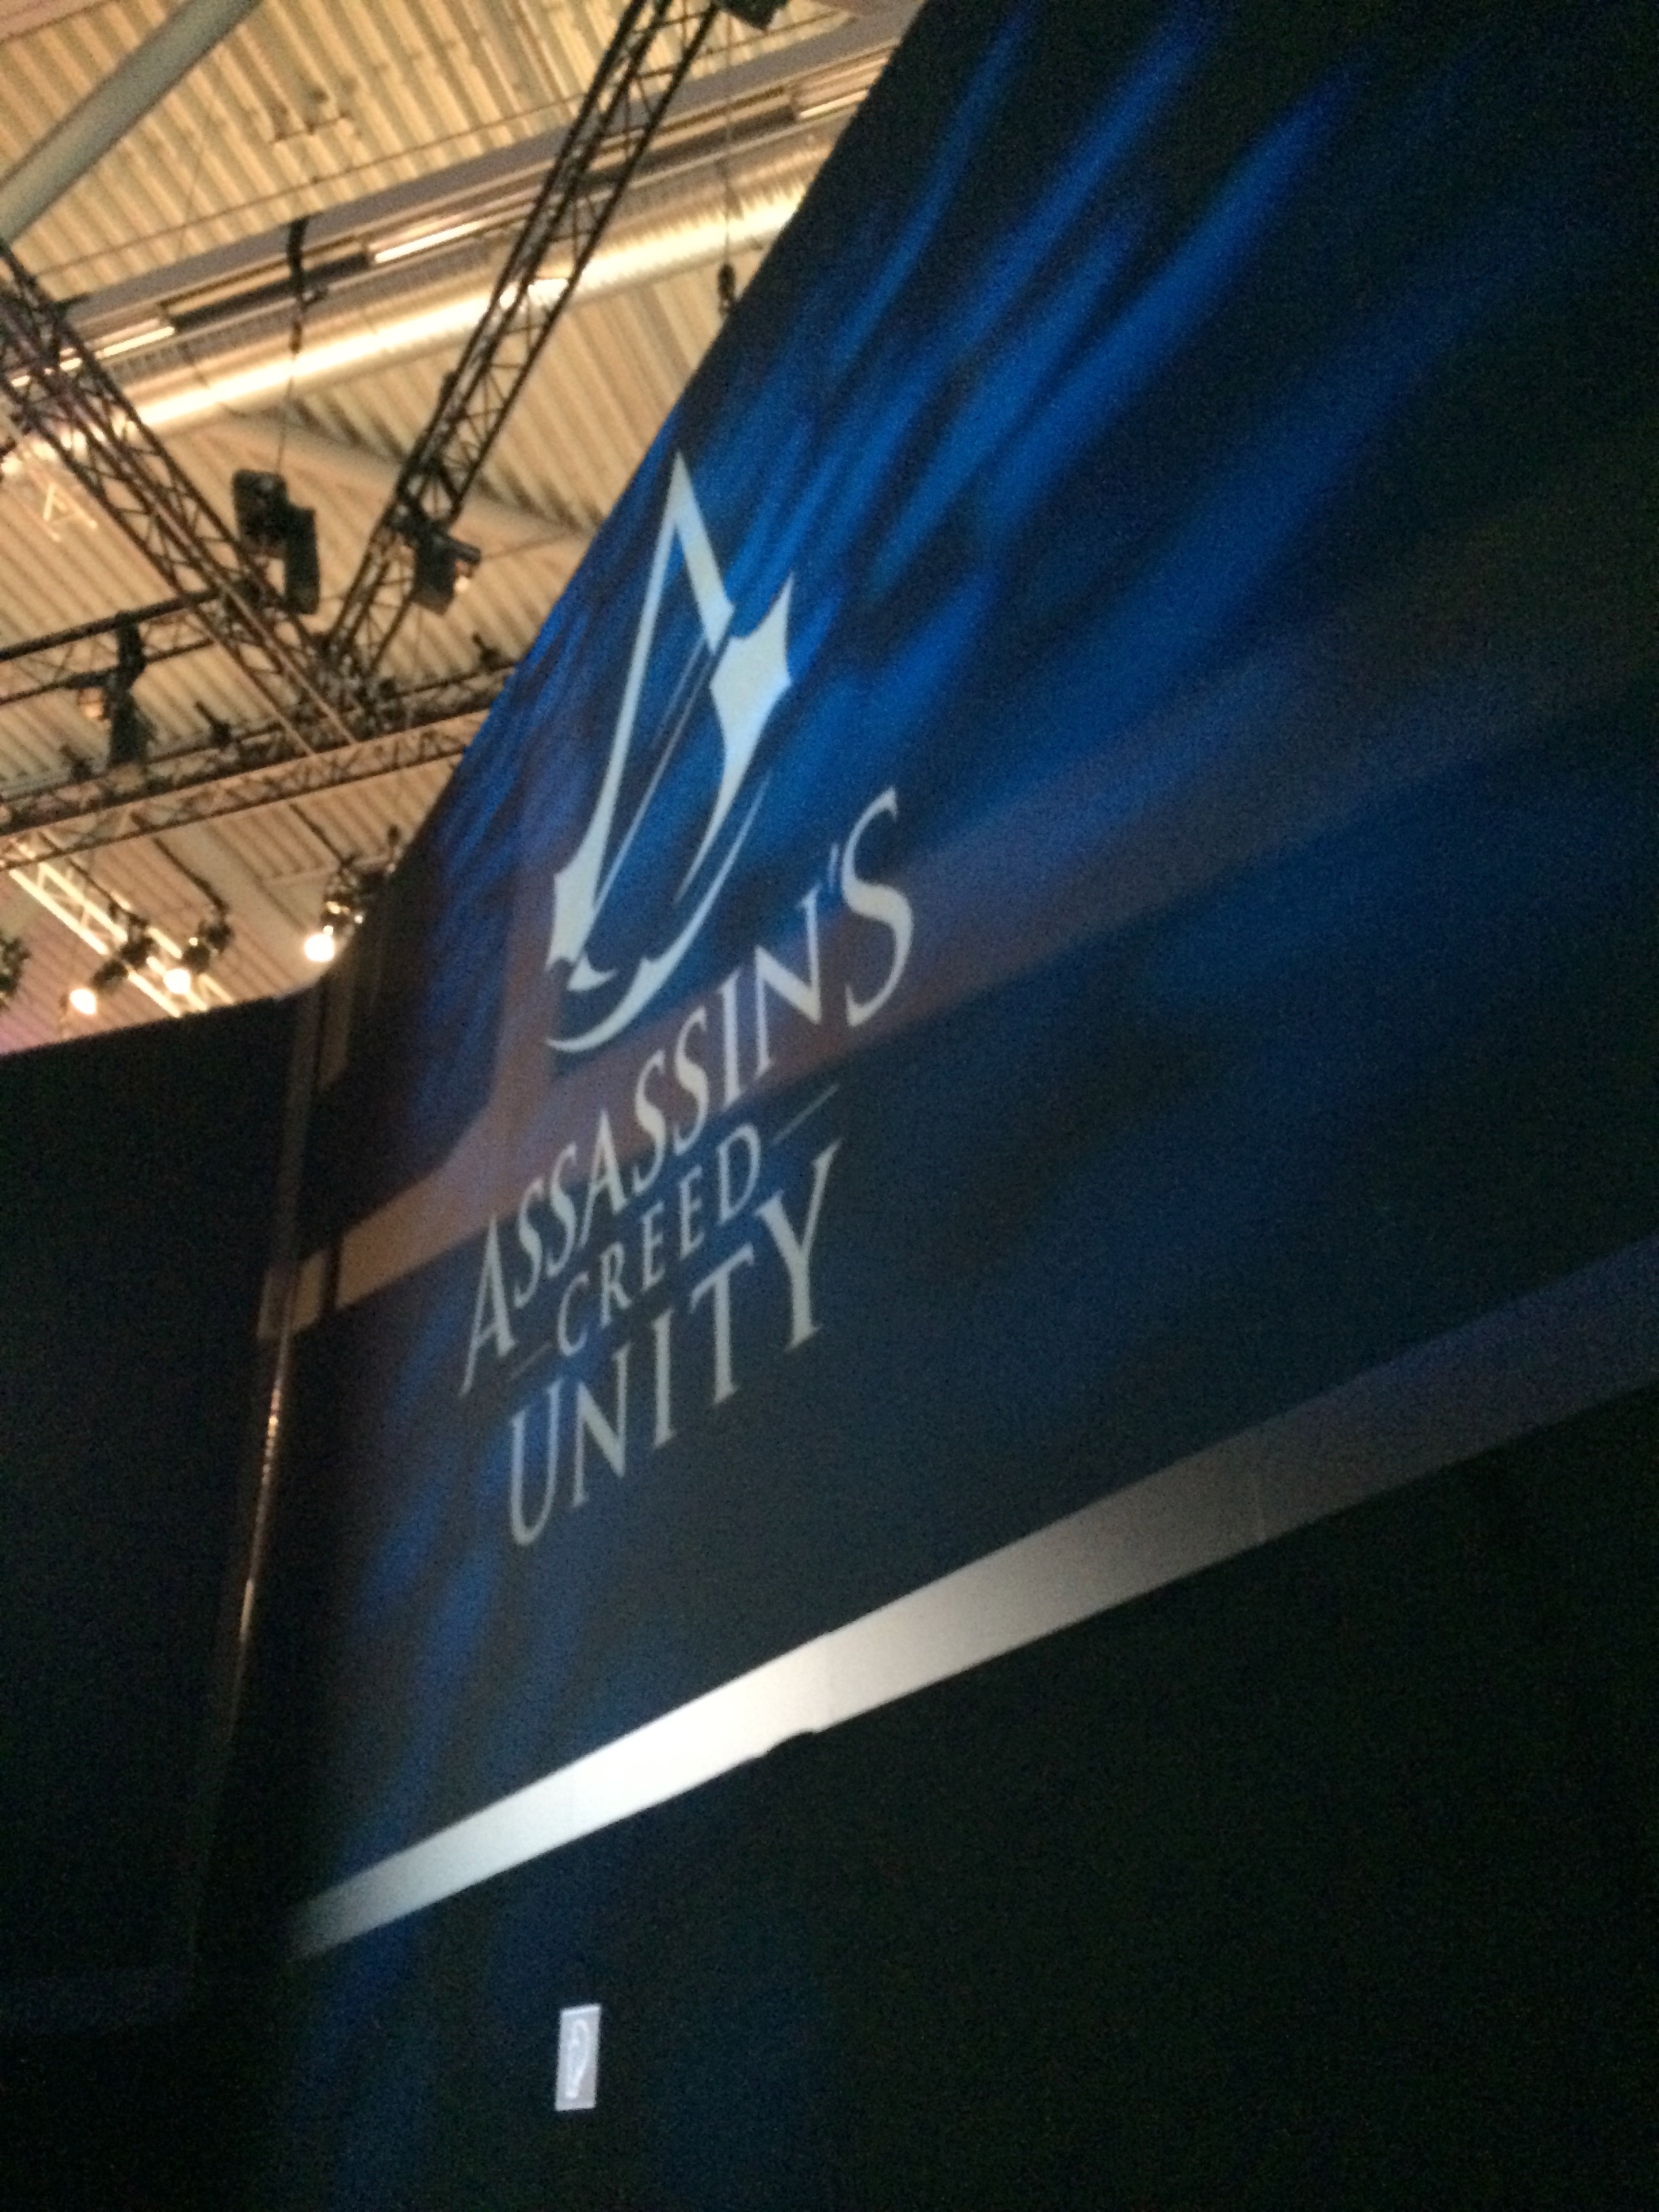 Assassin's Creed: Unity banner at the entrance of the Demo Theater